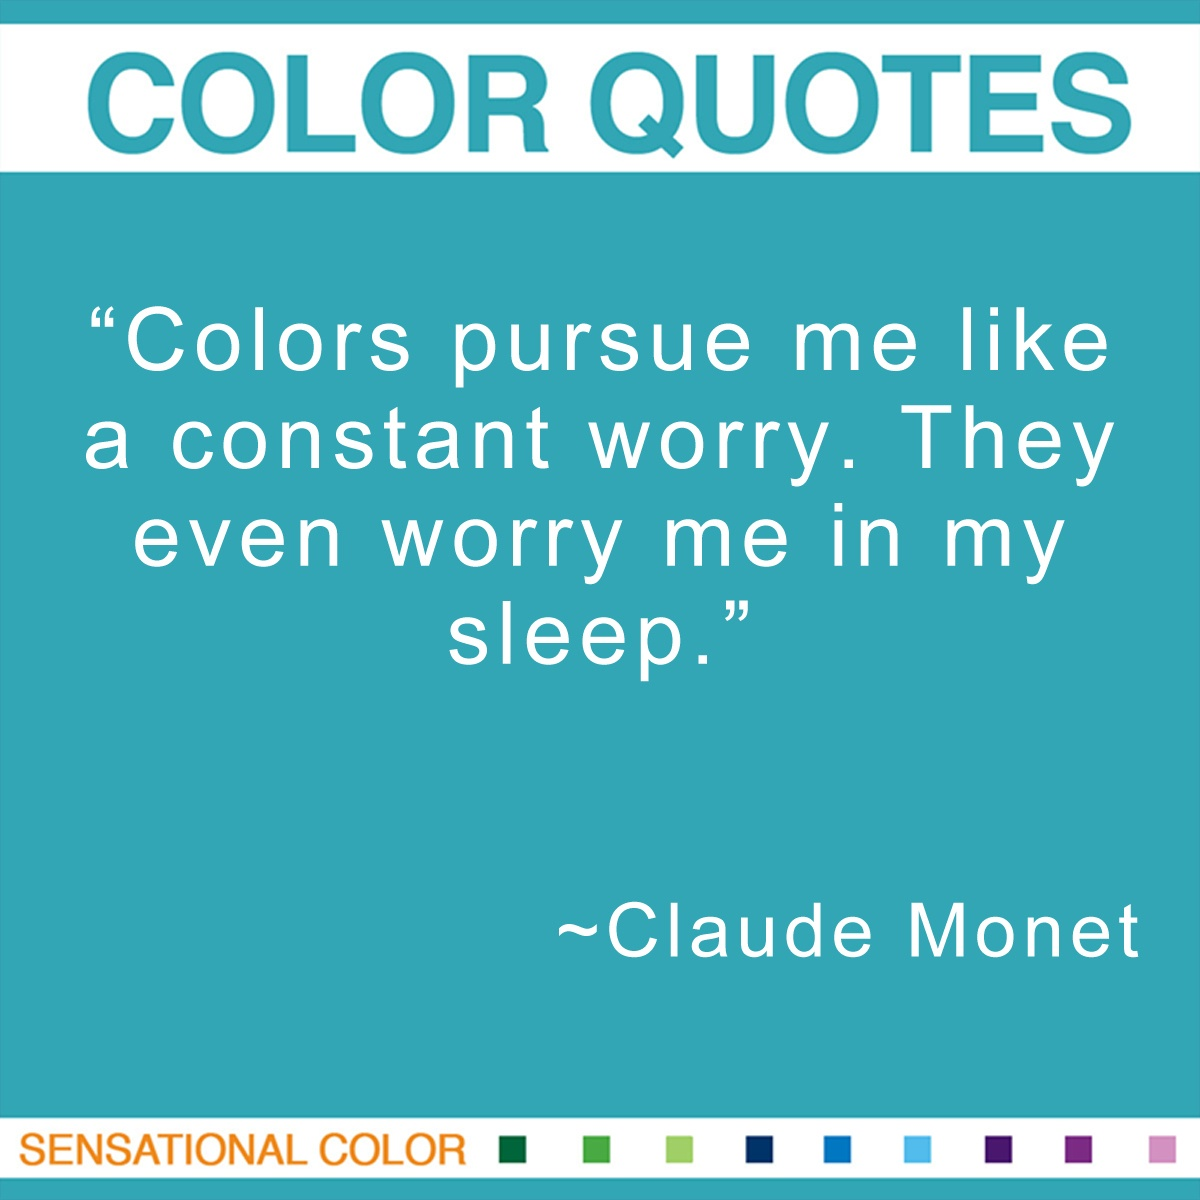 """Colors pursue me like a constant worry. They even worry me in my sleep."" – Claude Monet"